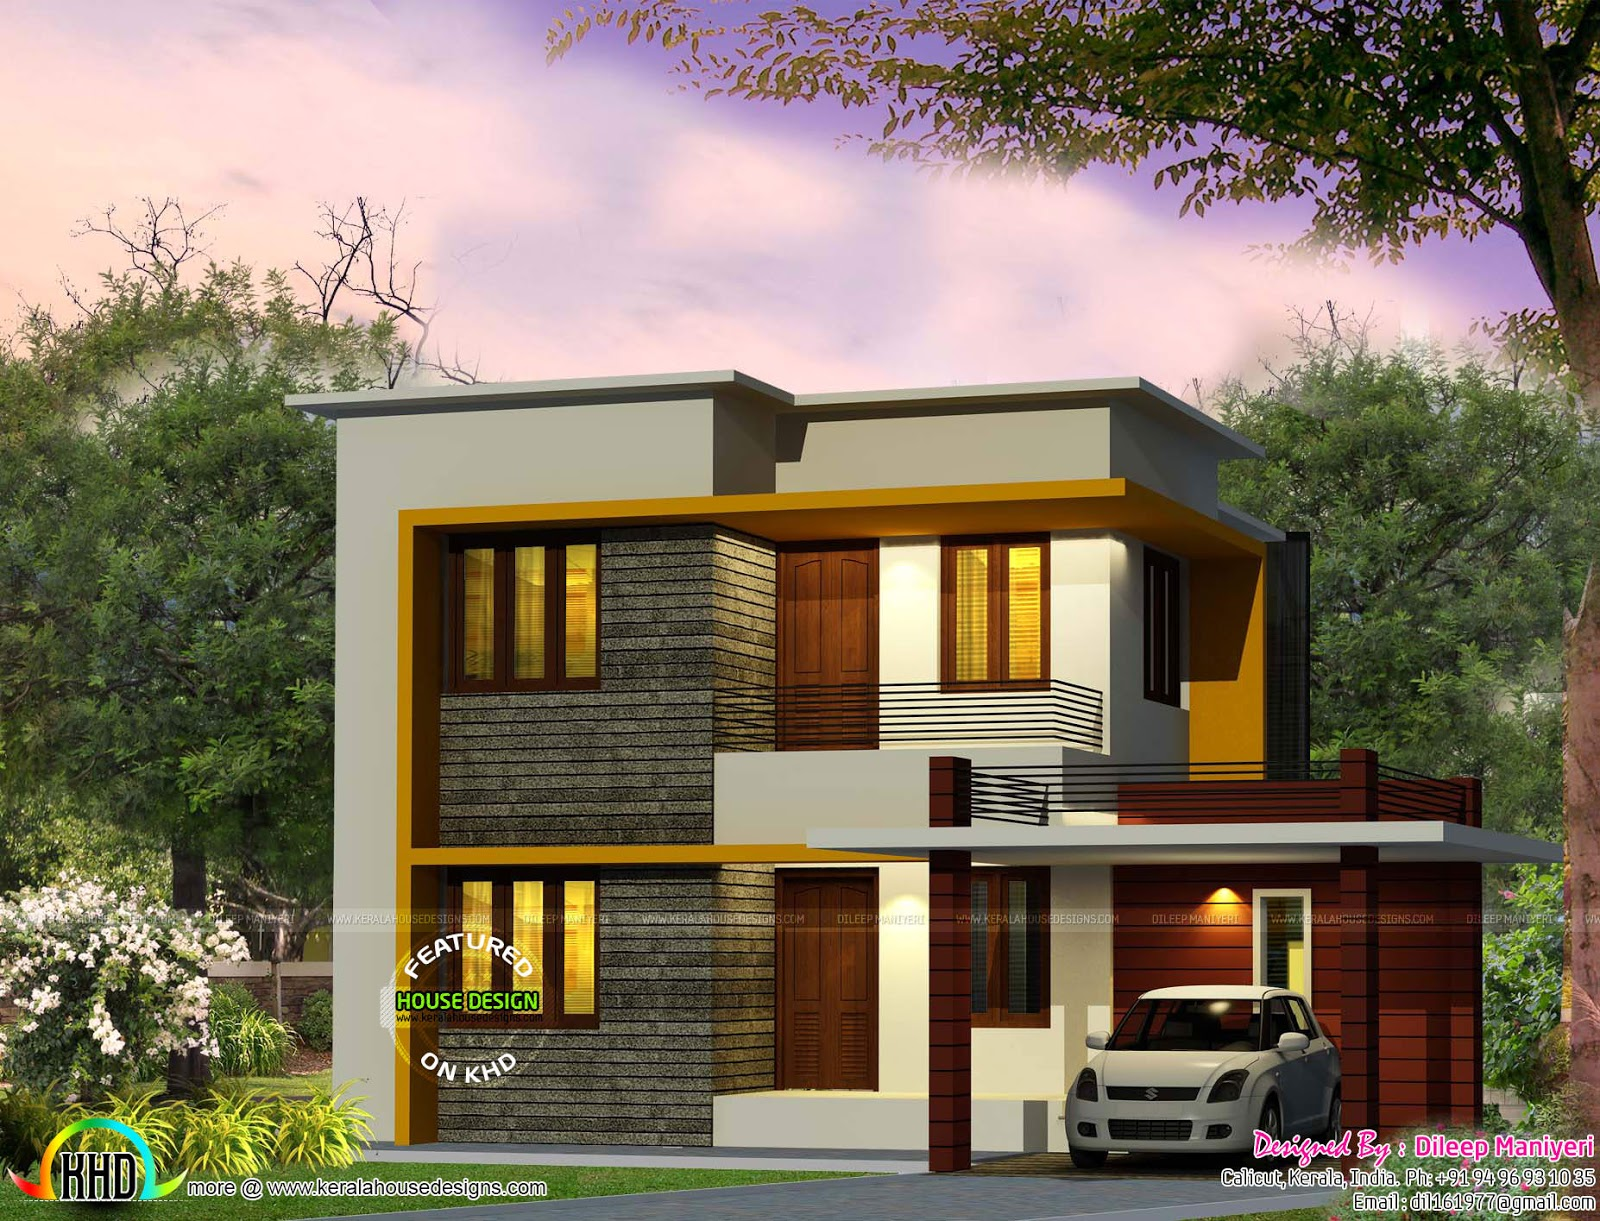 Cute 4 bedroom modern house 1670 sq ft kerala home for Four bedroom kerala house plans